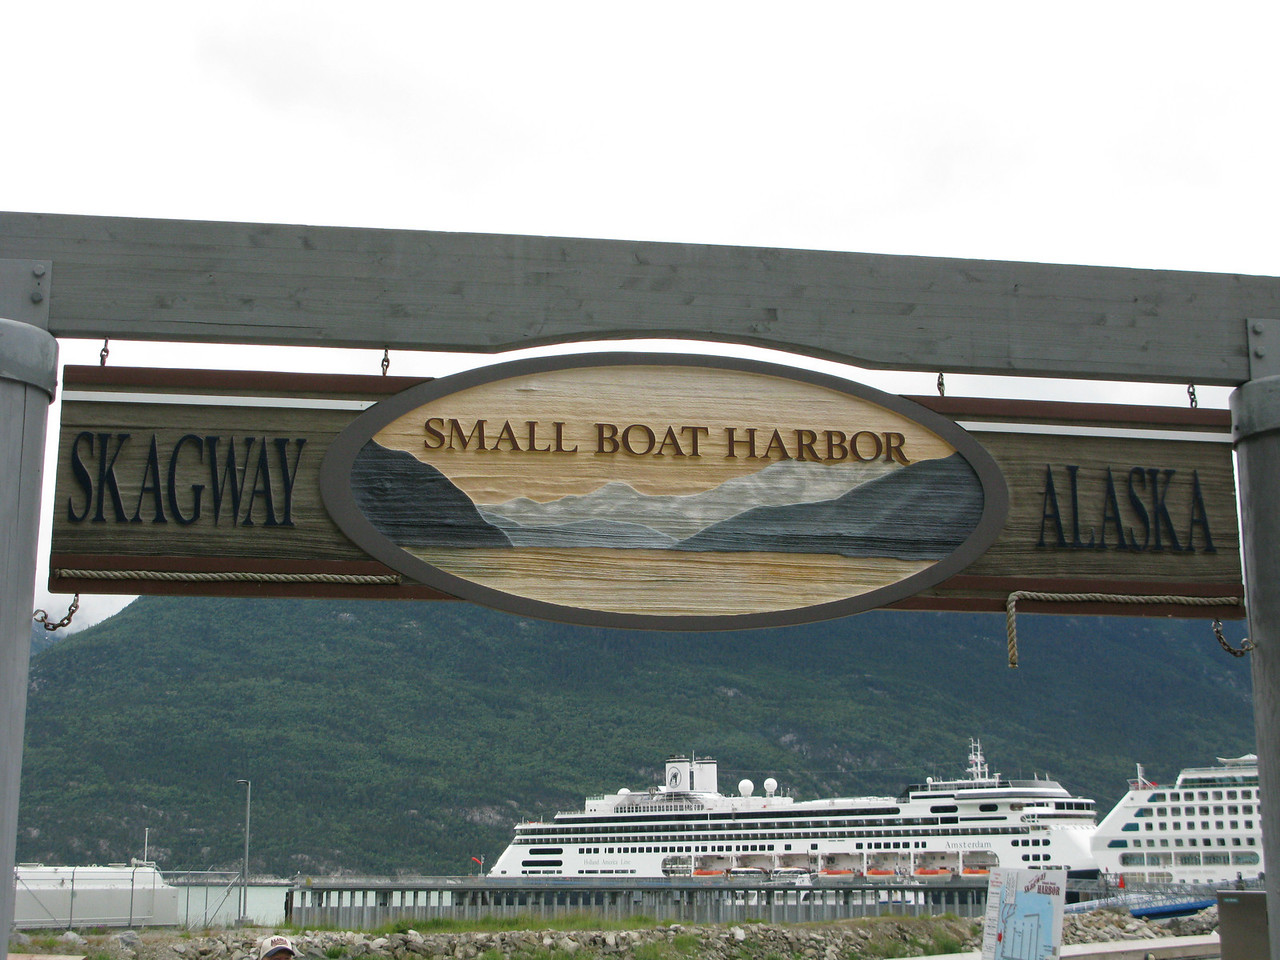 Helen's most anticipated day...   Skagway.